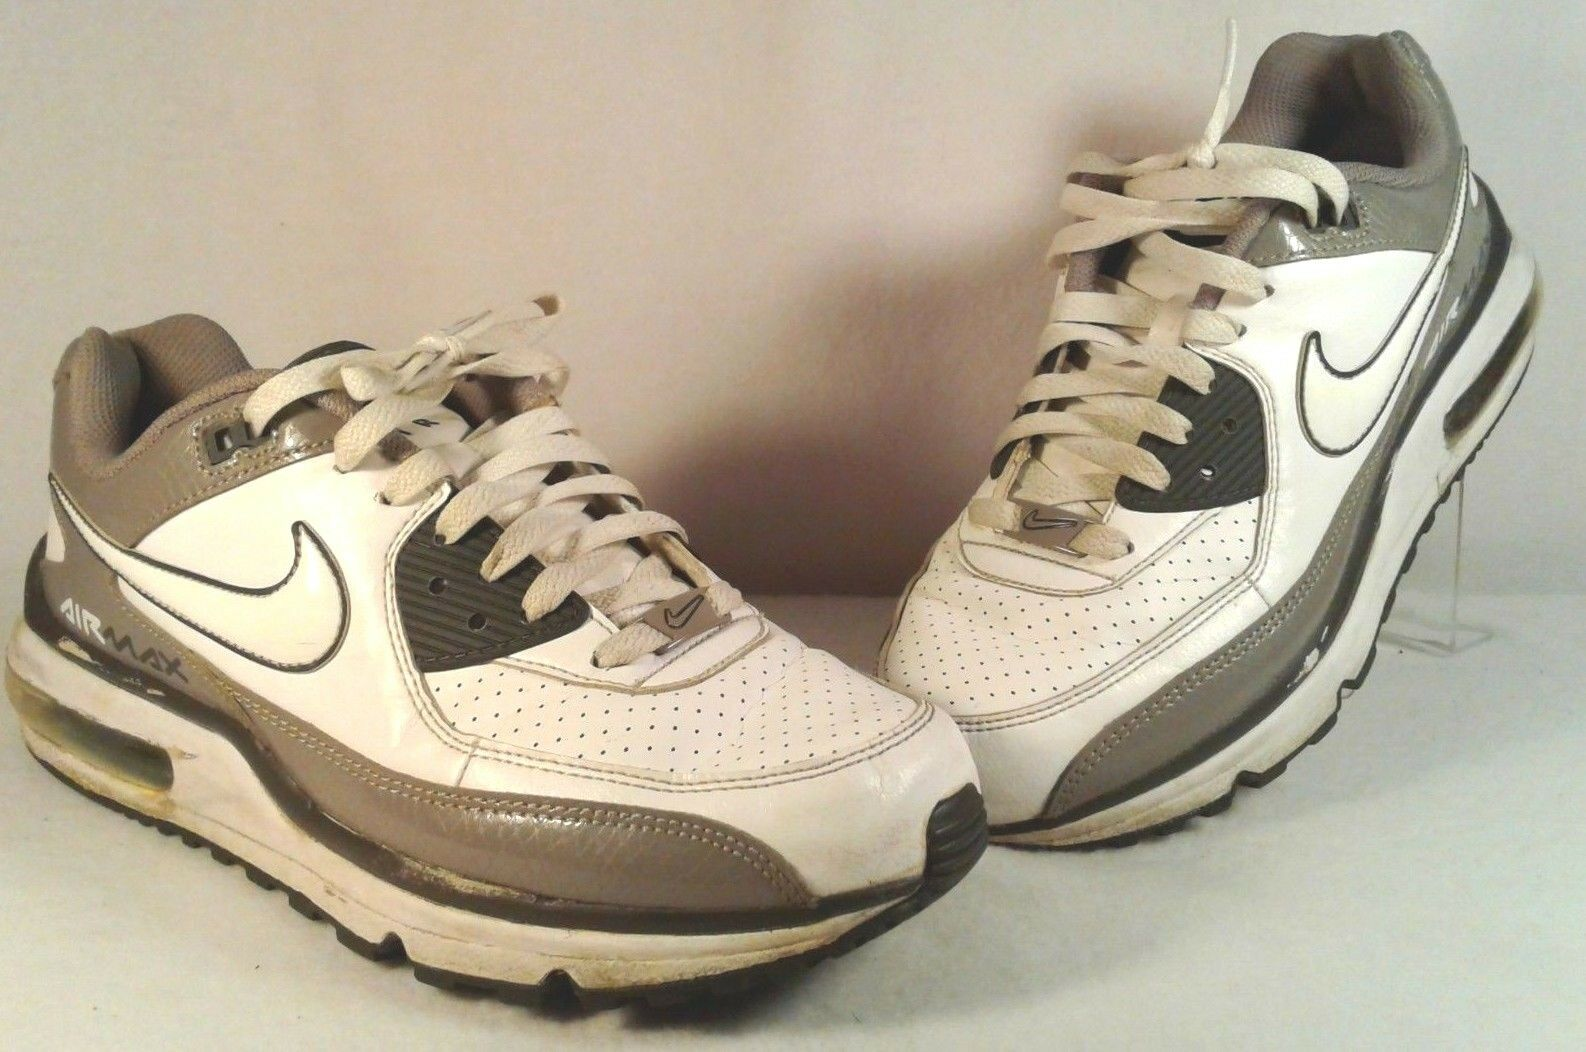 AIR MAX 2012 MEN'S CASUAL COMFORT JOGGING RUNNING TRAINER AEROBIC SHOE EUC SZ 9